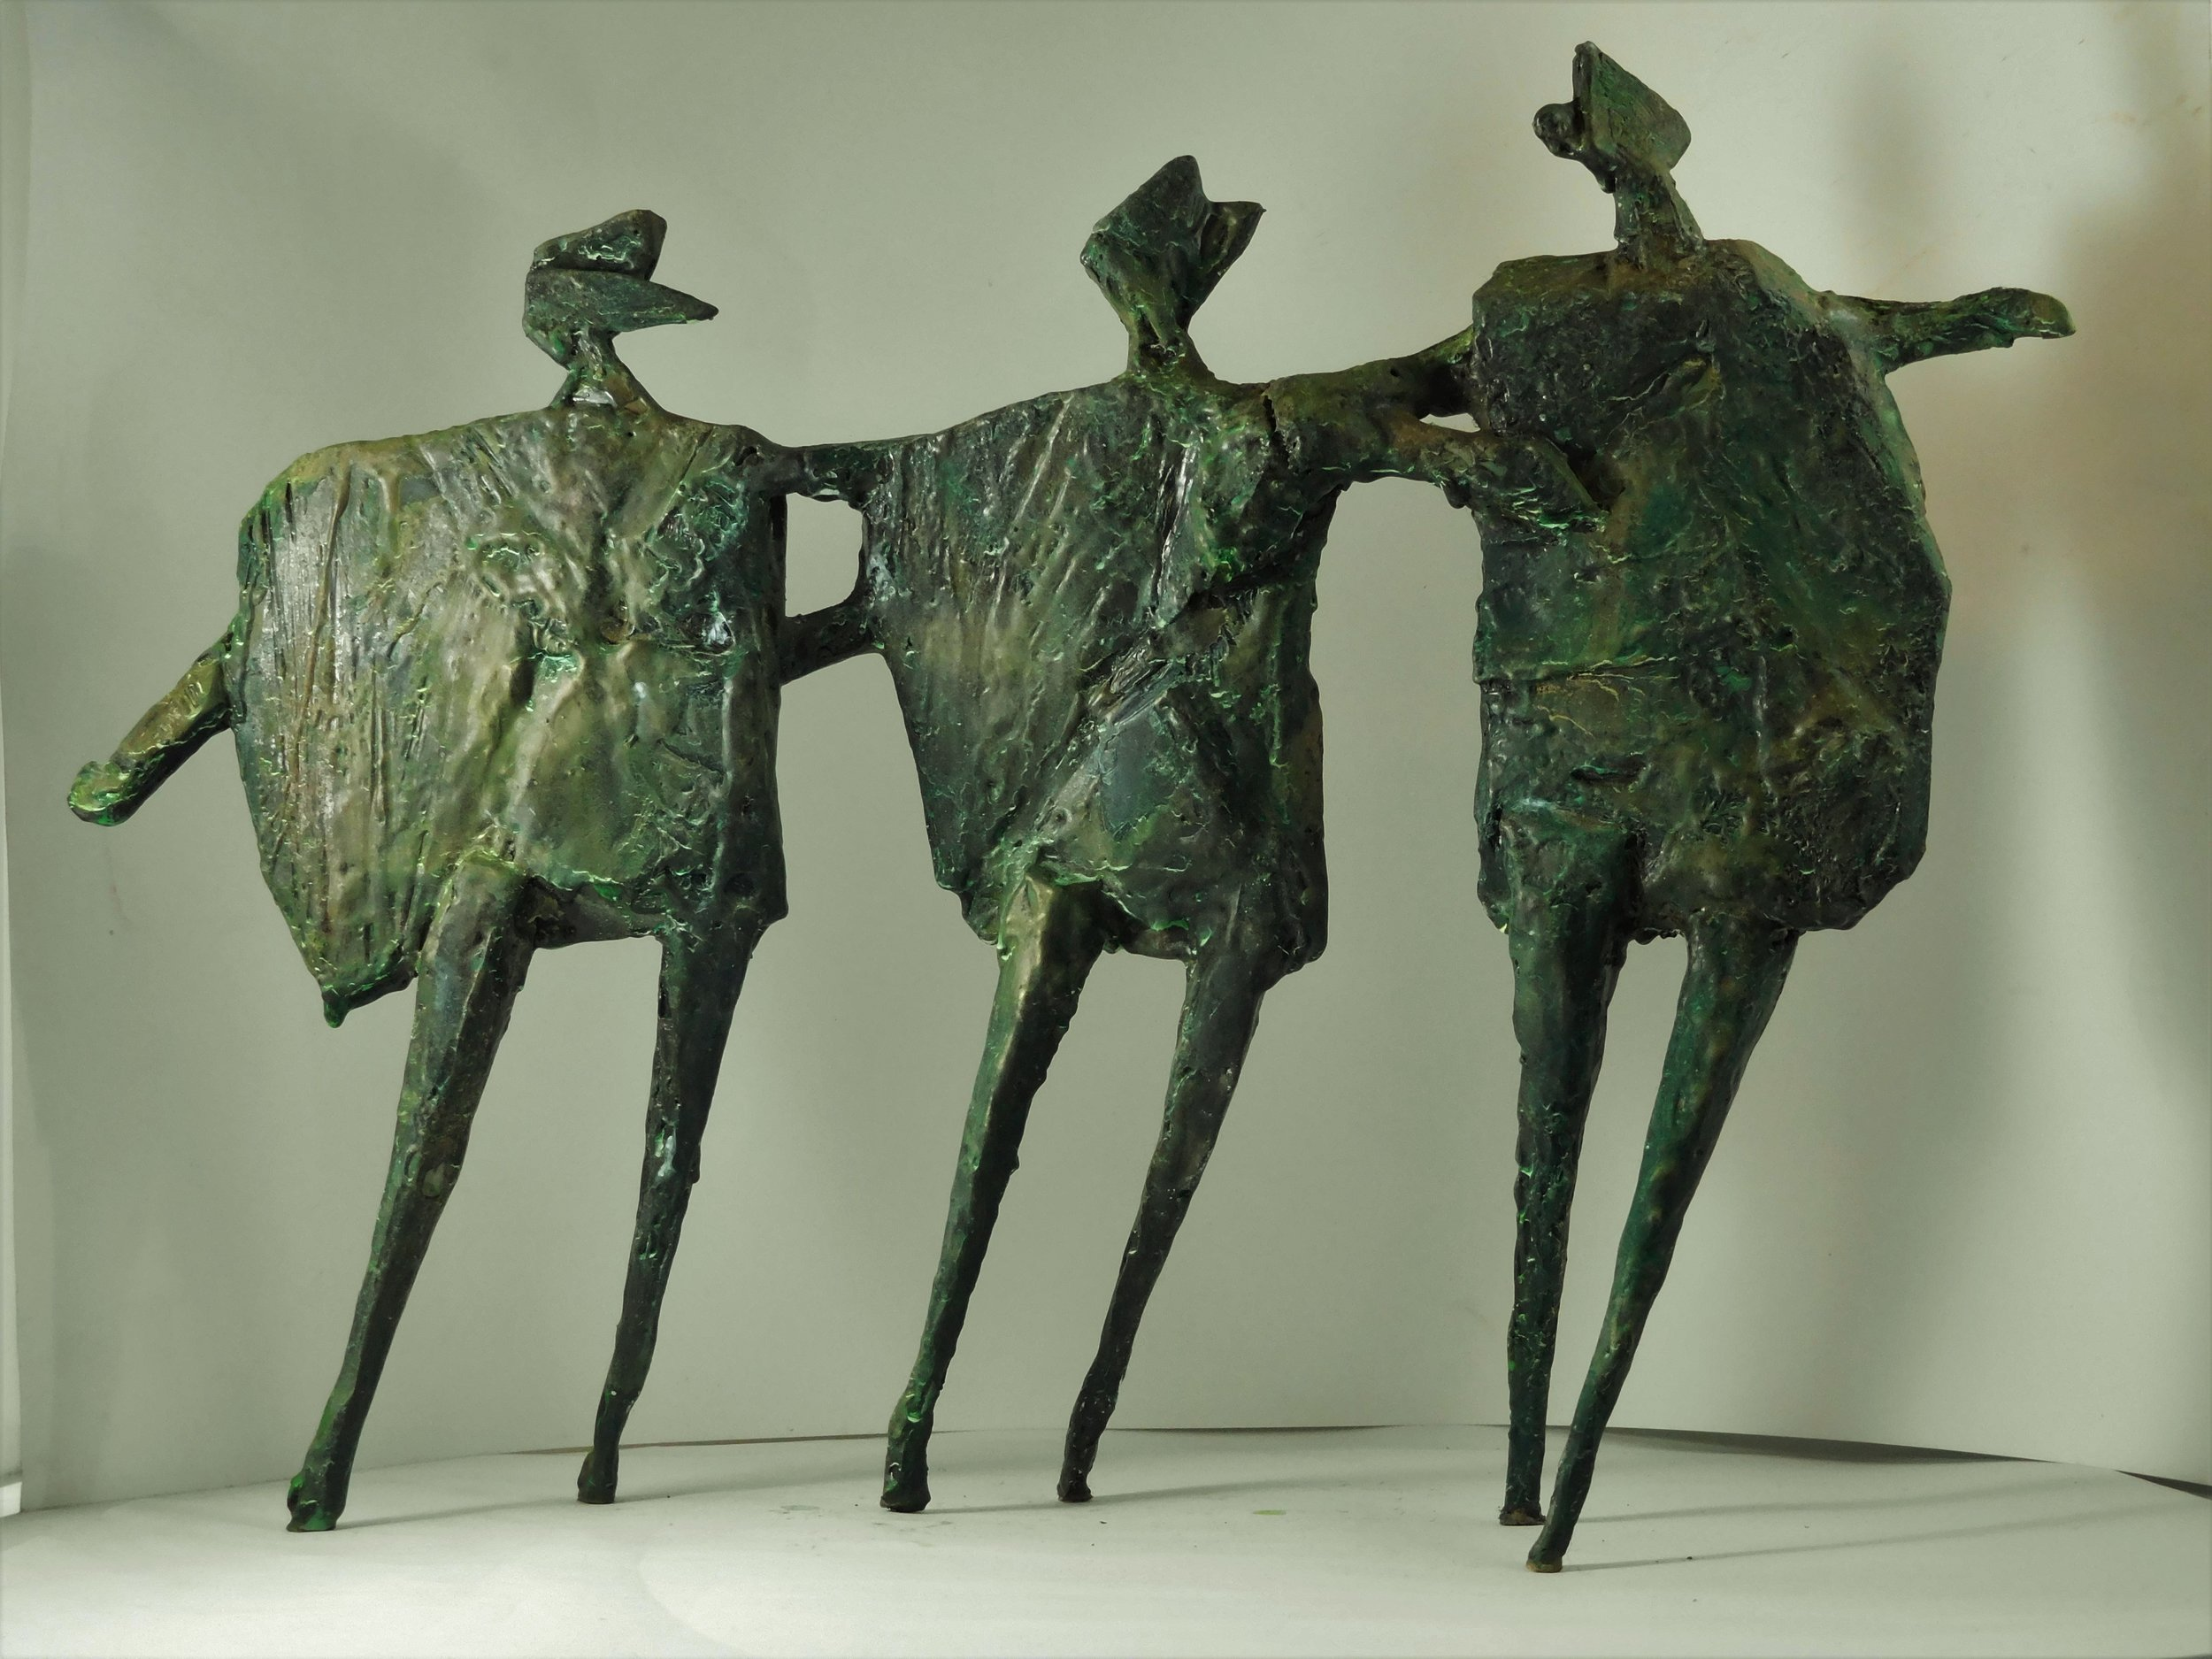 Title: Running Children Size: 30 cm (h) x 41 cm (w) Medium: Bronze, edition 3 of 9  Price: £2100